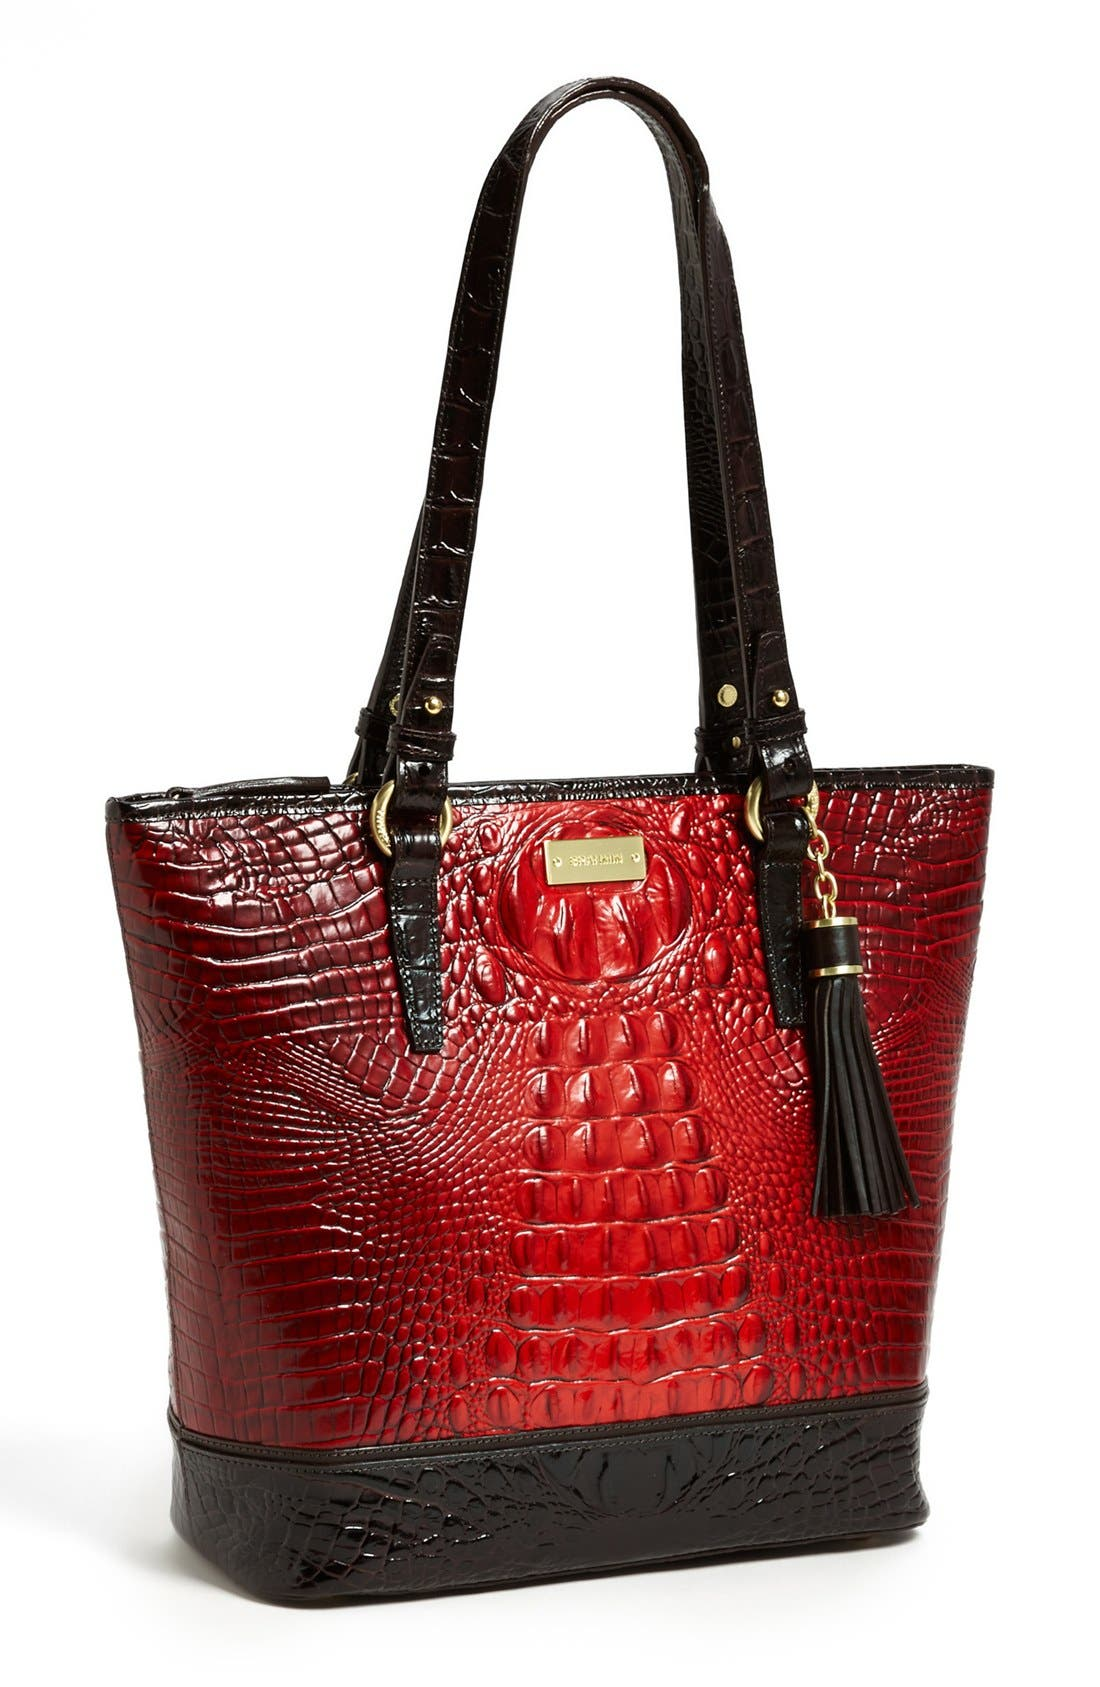 Alternate Image 1 Selected - Brahmin 'Asher' Tote